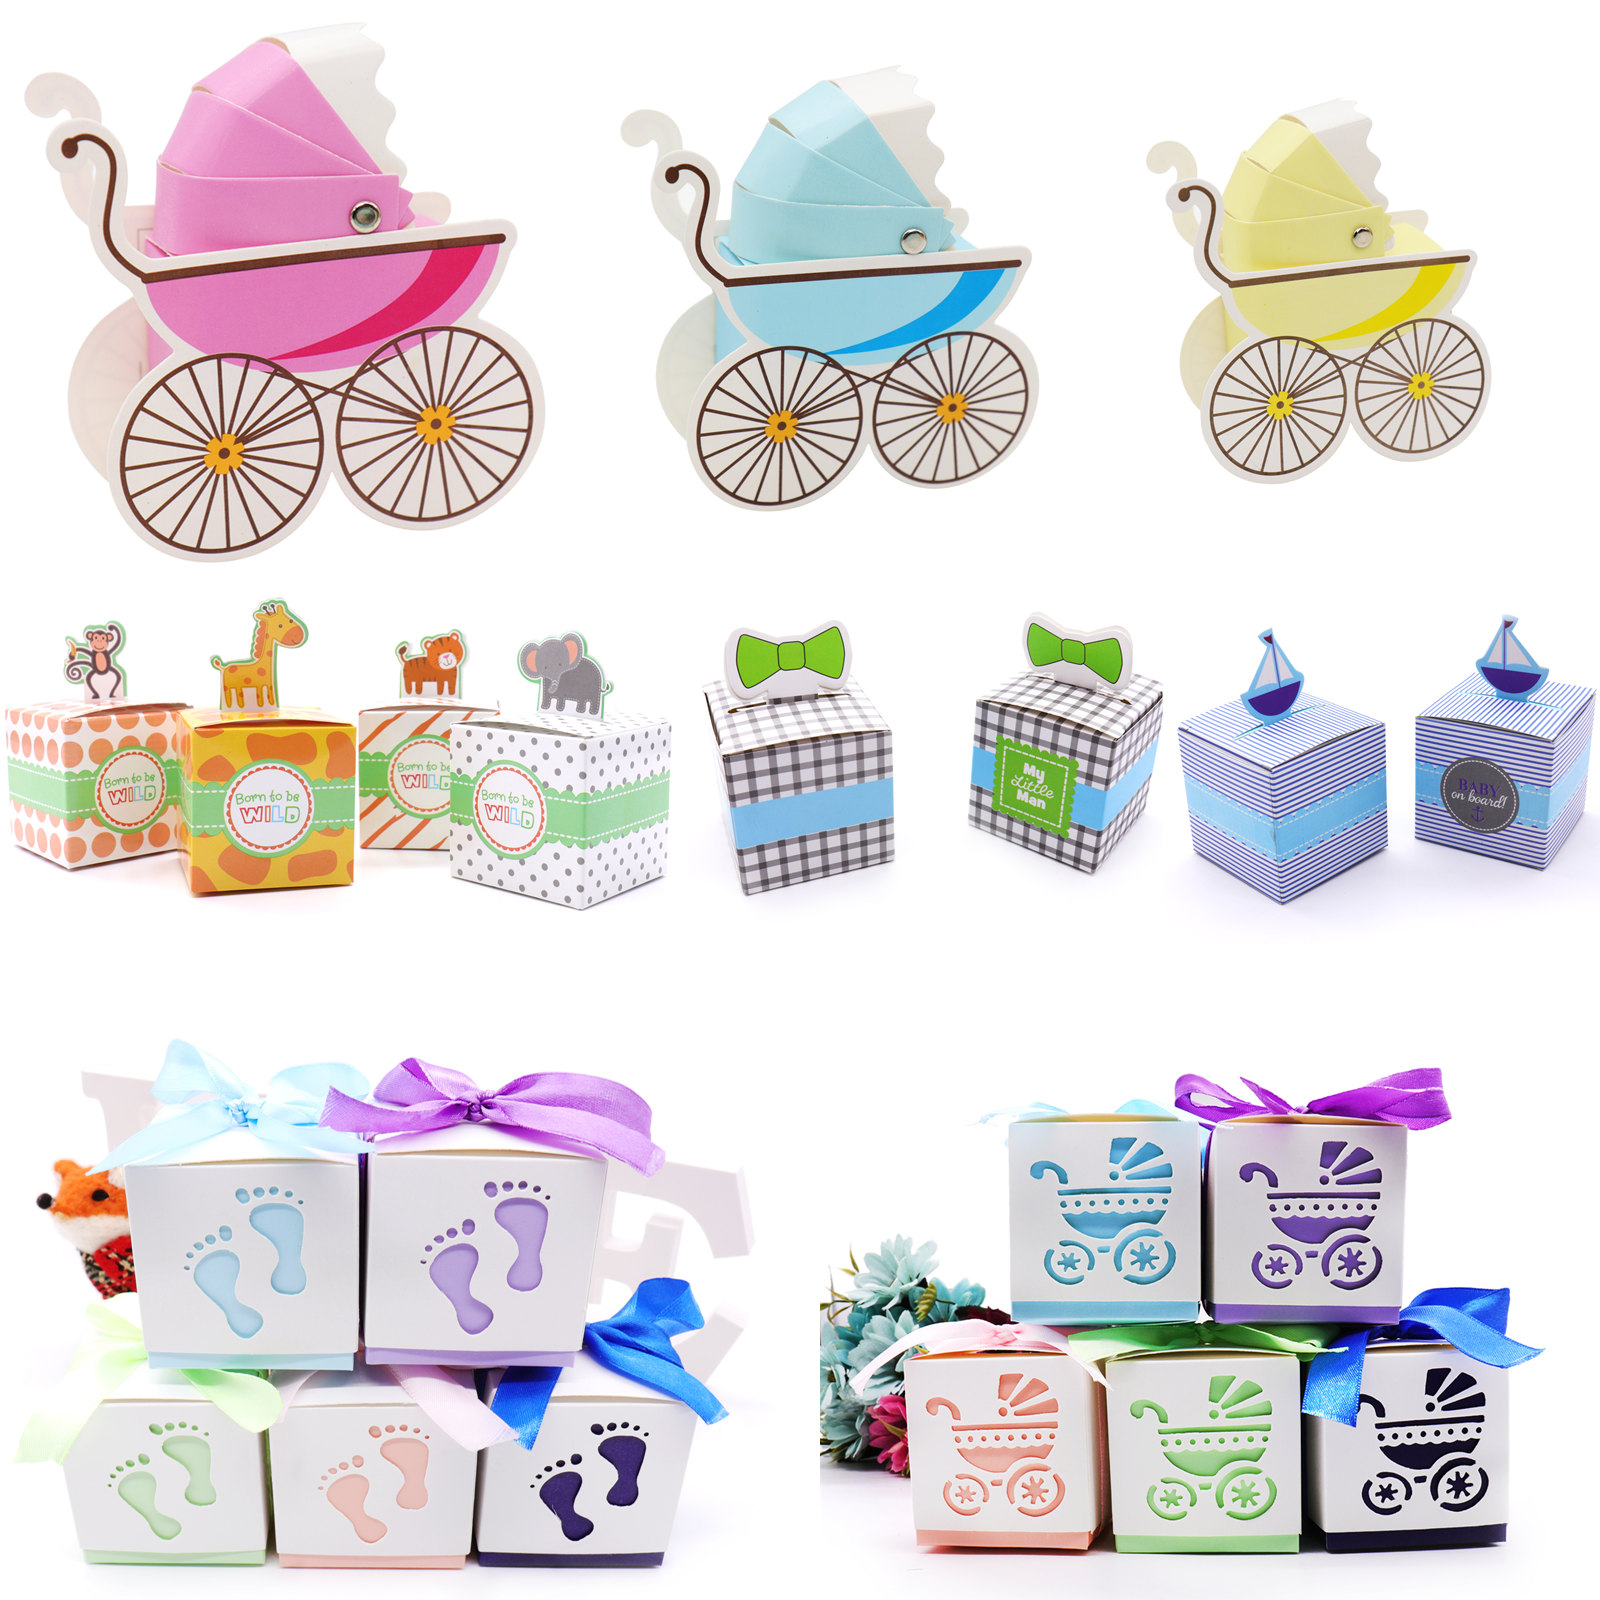 10pcs/lot Candy Boxes Baby Shower Party Cupcake Gift Bag Kids Party Favors Candy Box Paper Bags Birthday Wedding Decoration